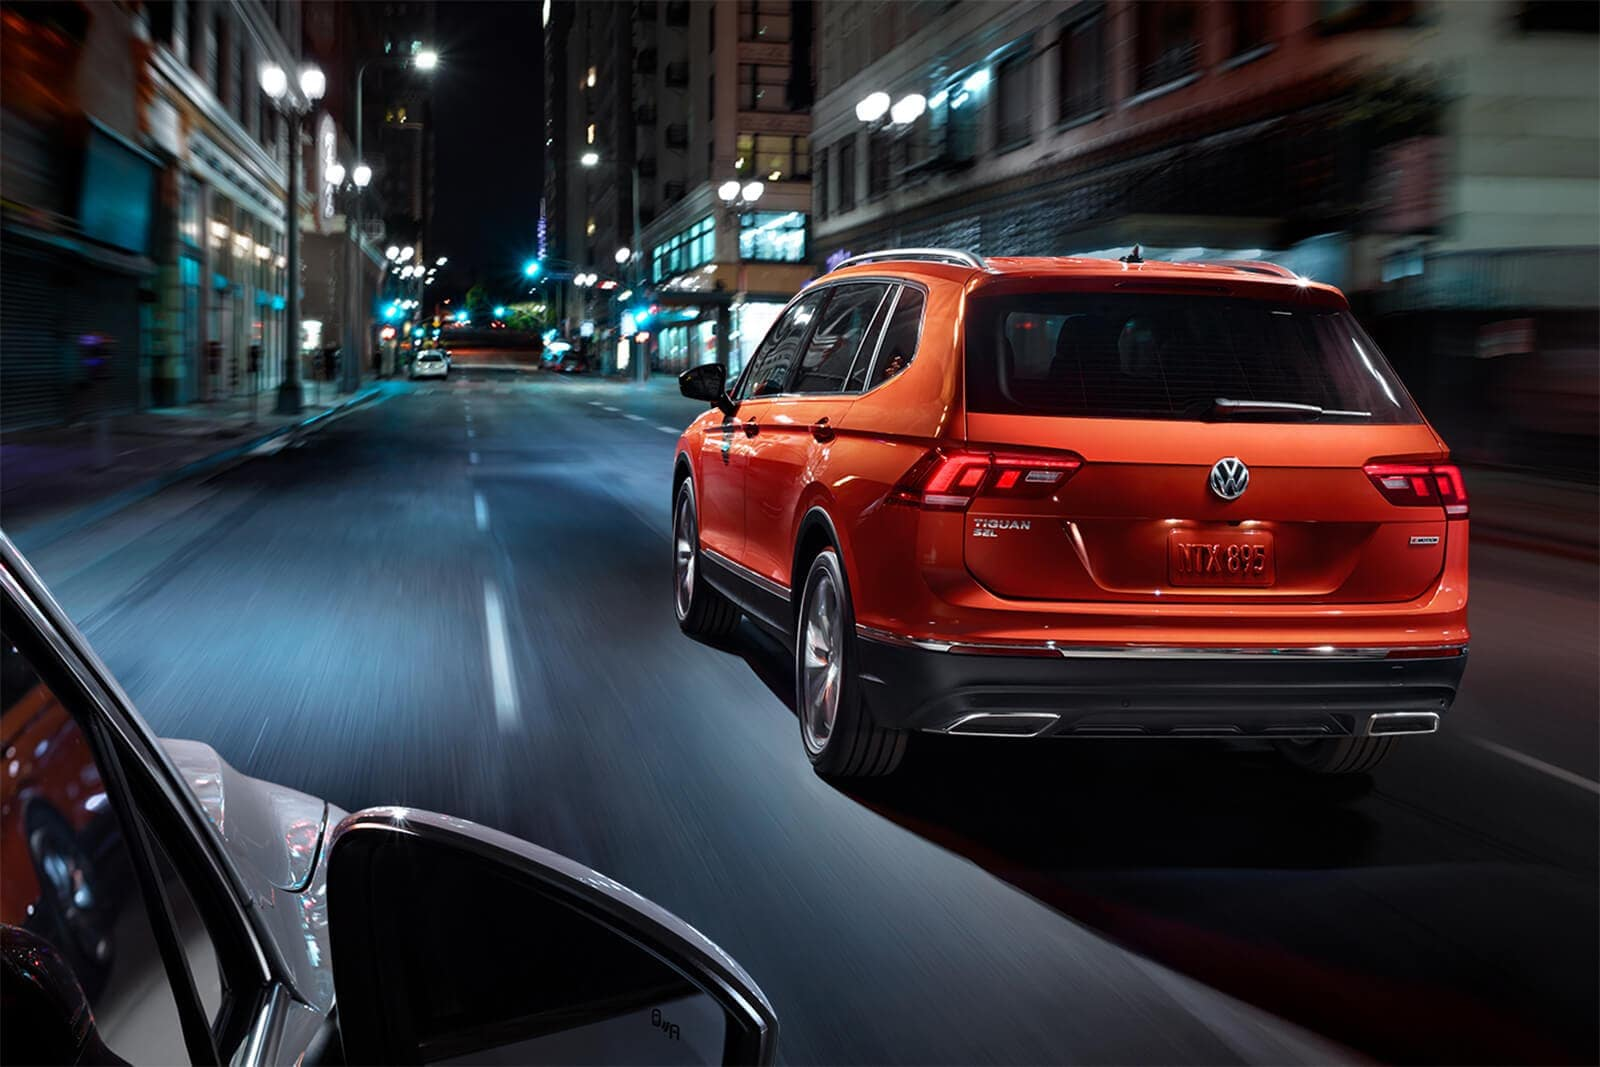 2019 Volkswagen Tiguan in Habanero Orange Metallic driving down road